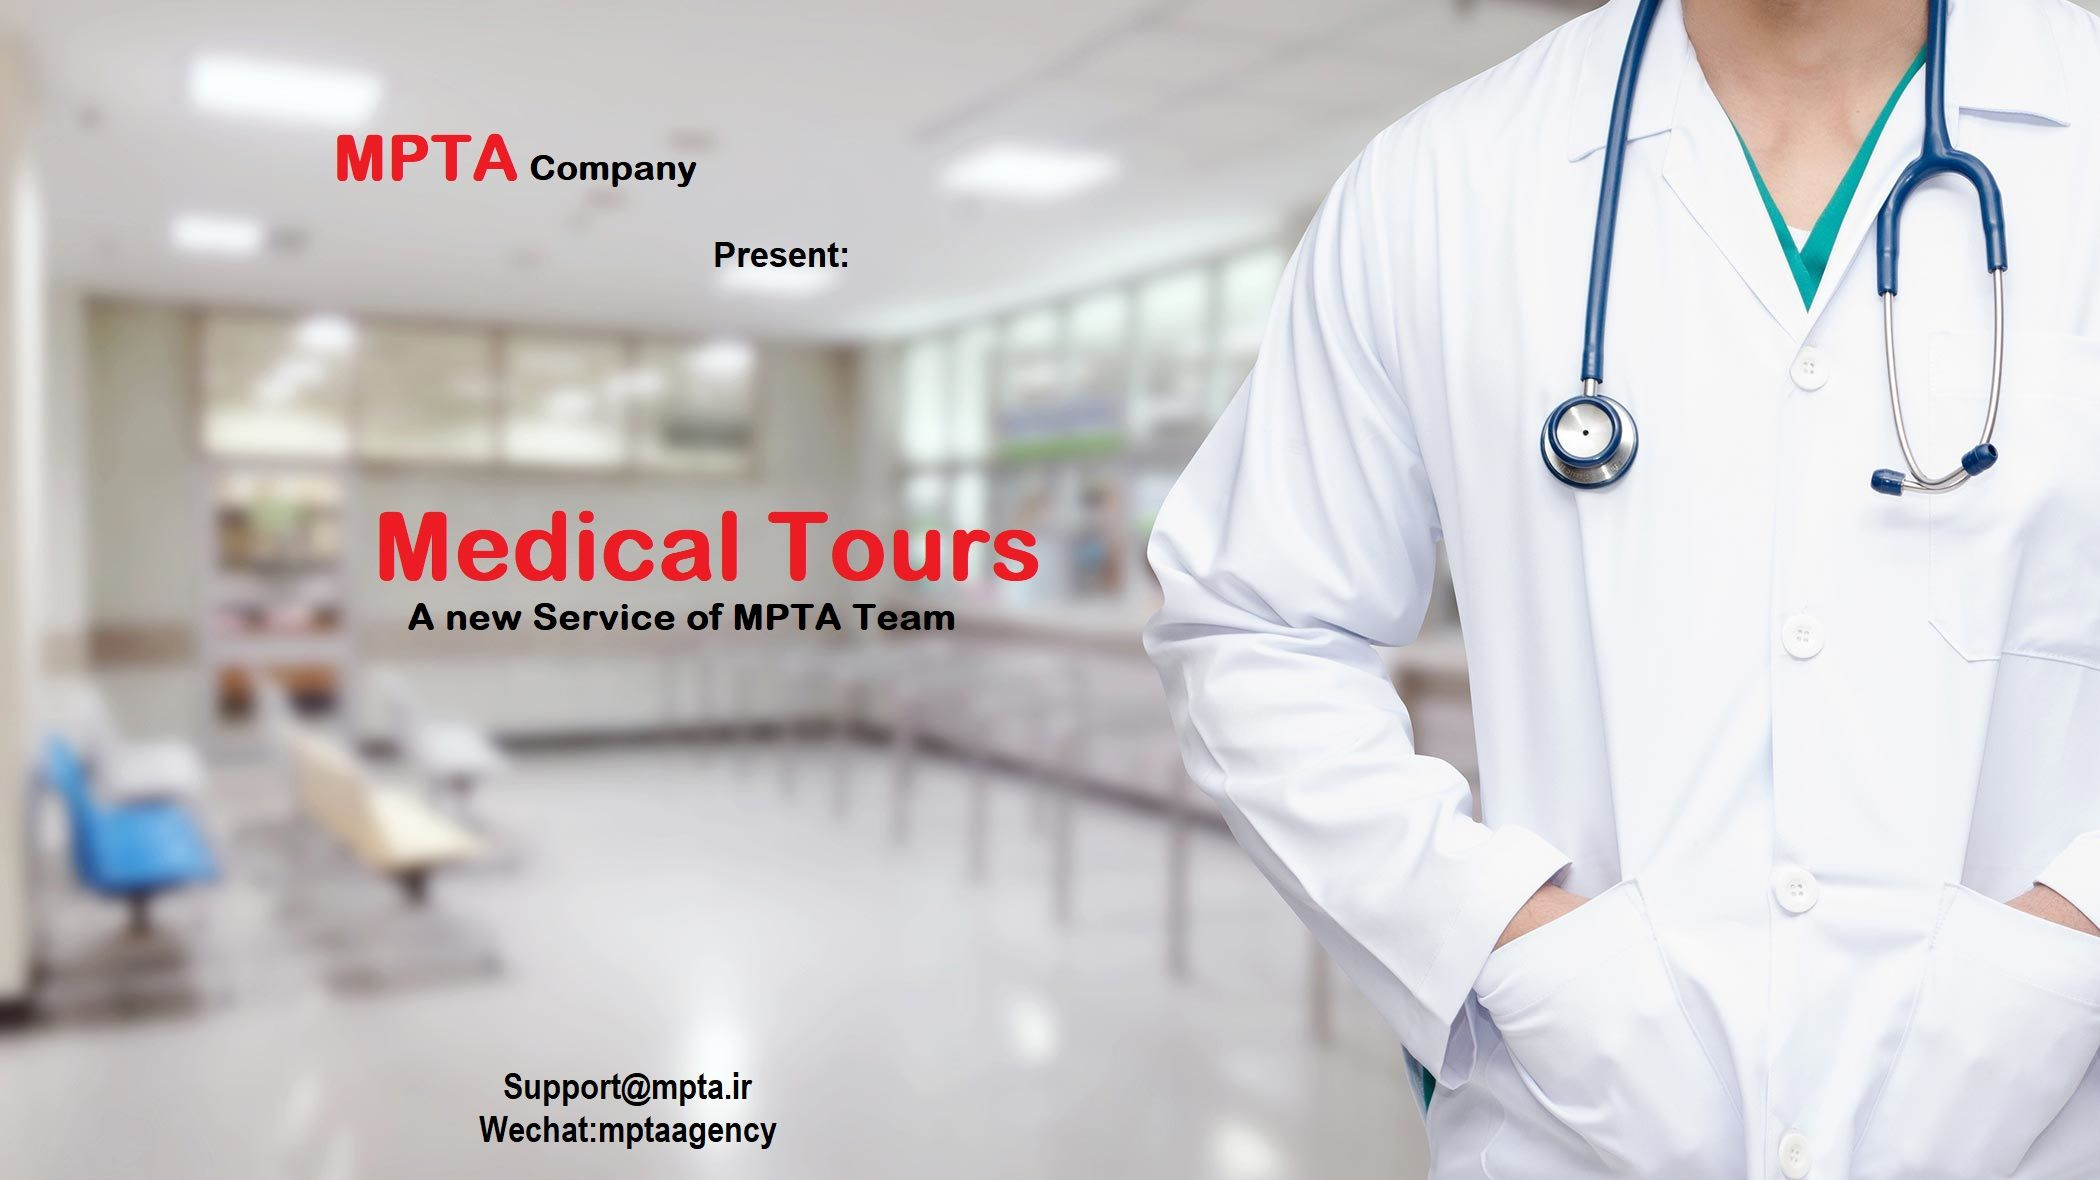 Iran Medical Tour For more information Supportmpta.ir